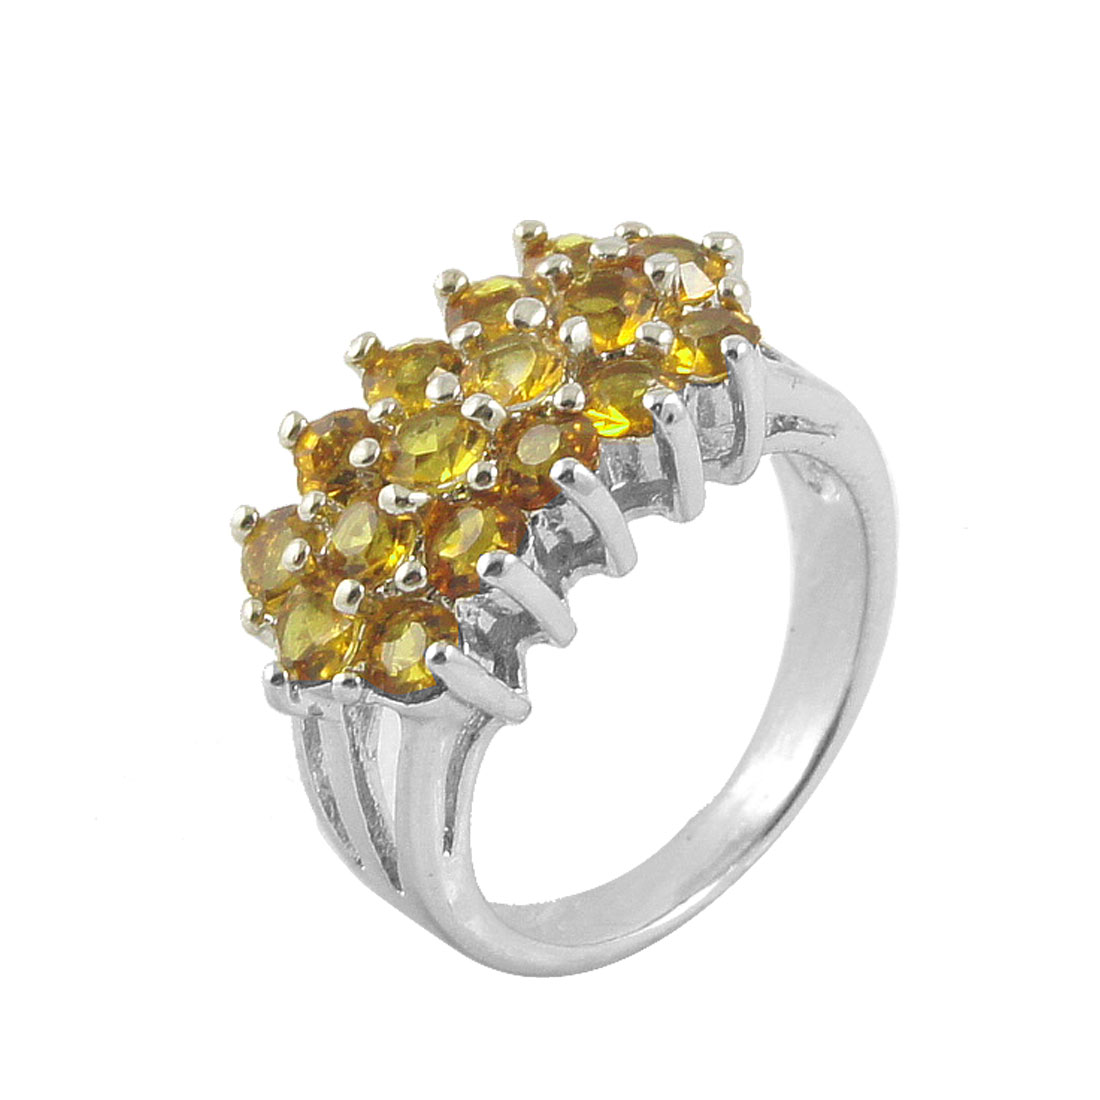 Ladies Yellow Glittery Rhinestone Detail Silver Tone Finger Ring US 4 3/4